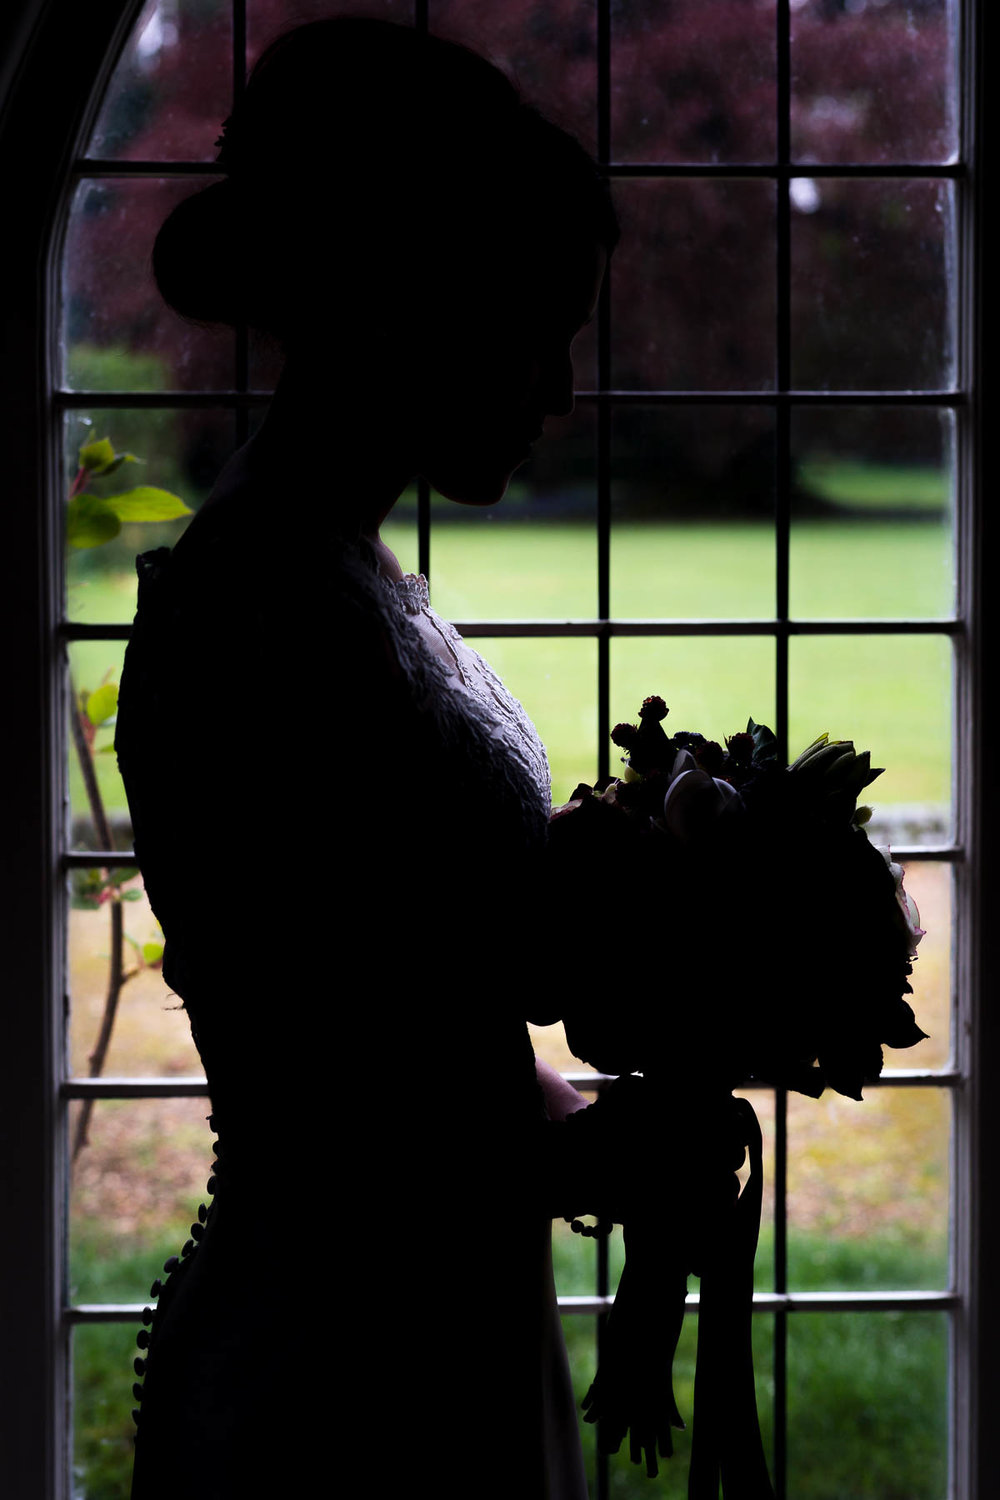 silhouette wedding photo ideas bride